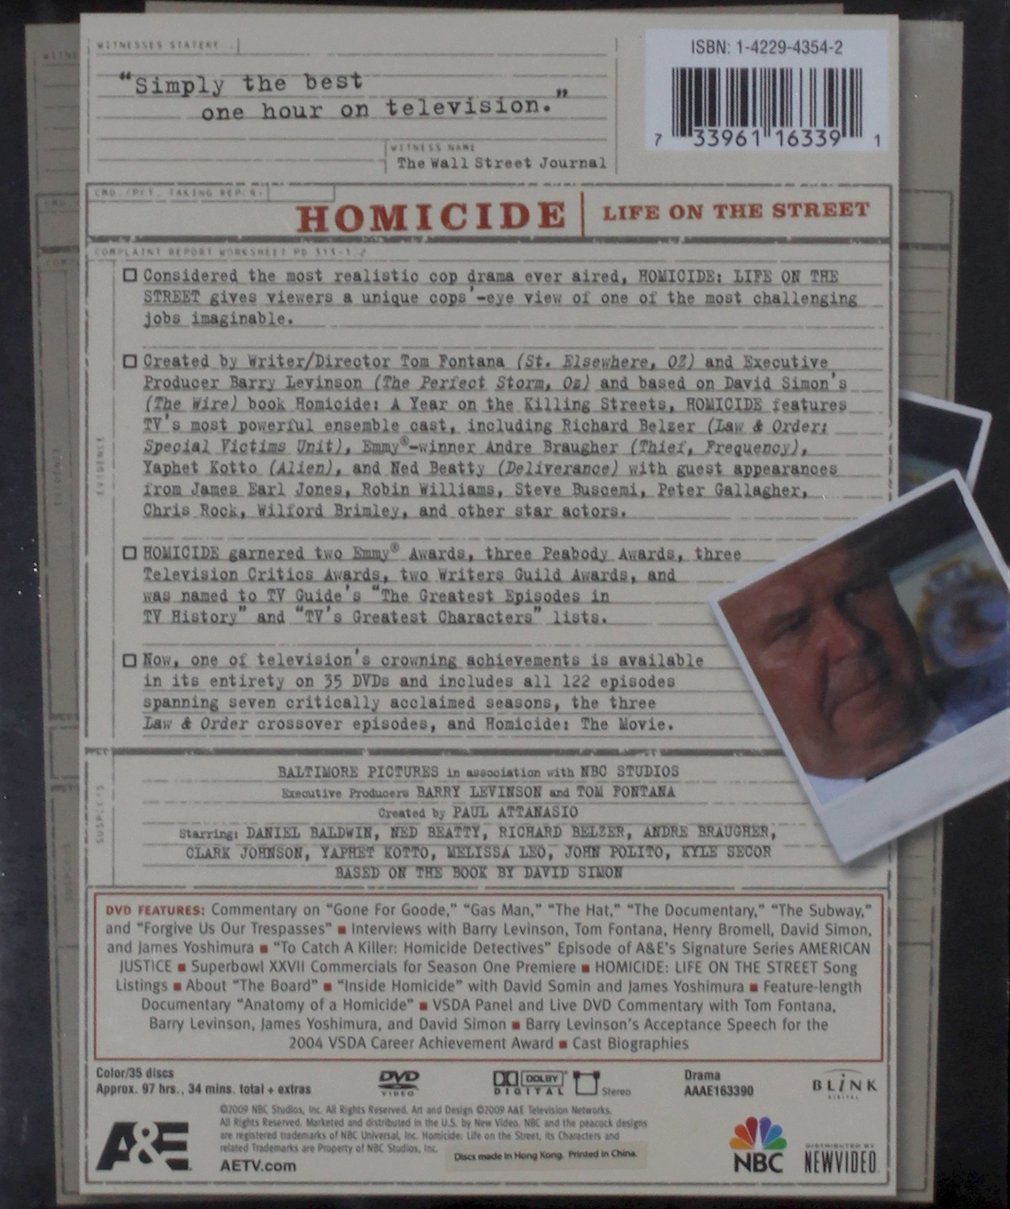 Homicide: Life on the Street - The Complete Series by A&E